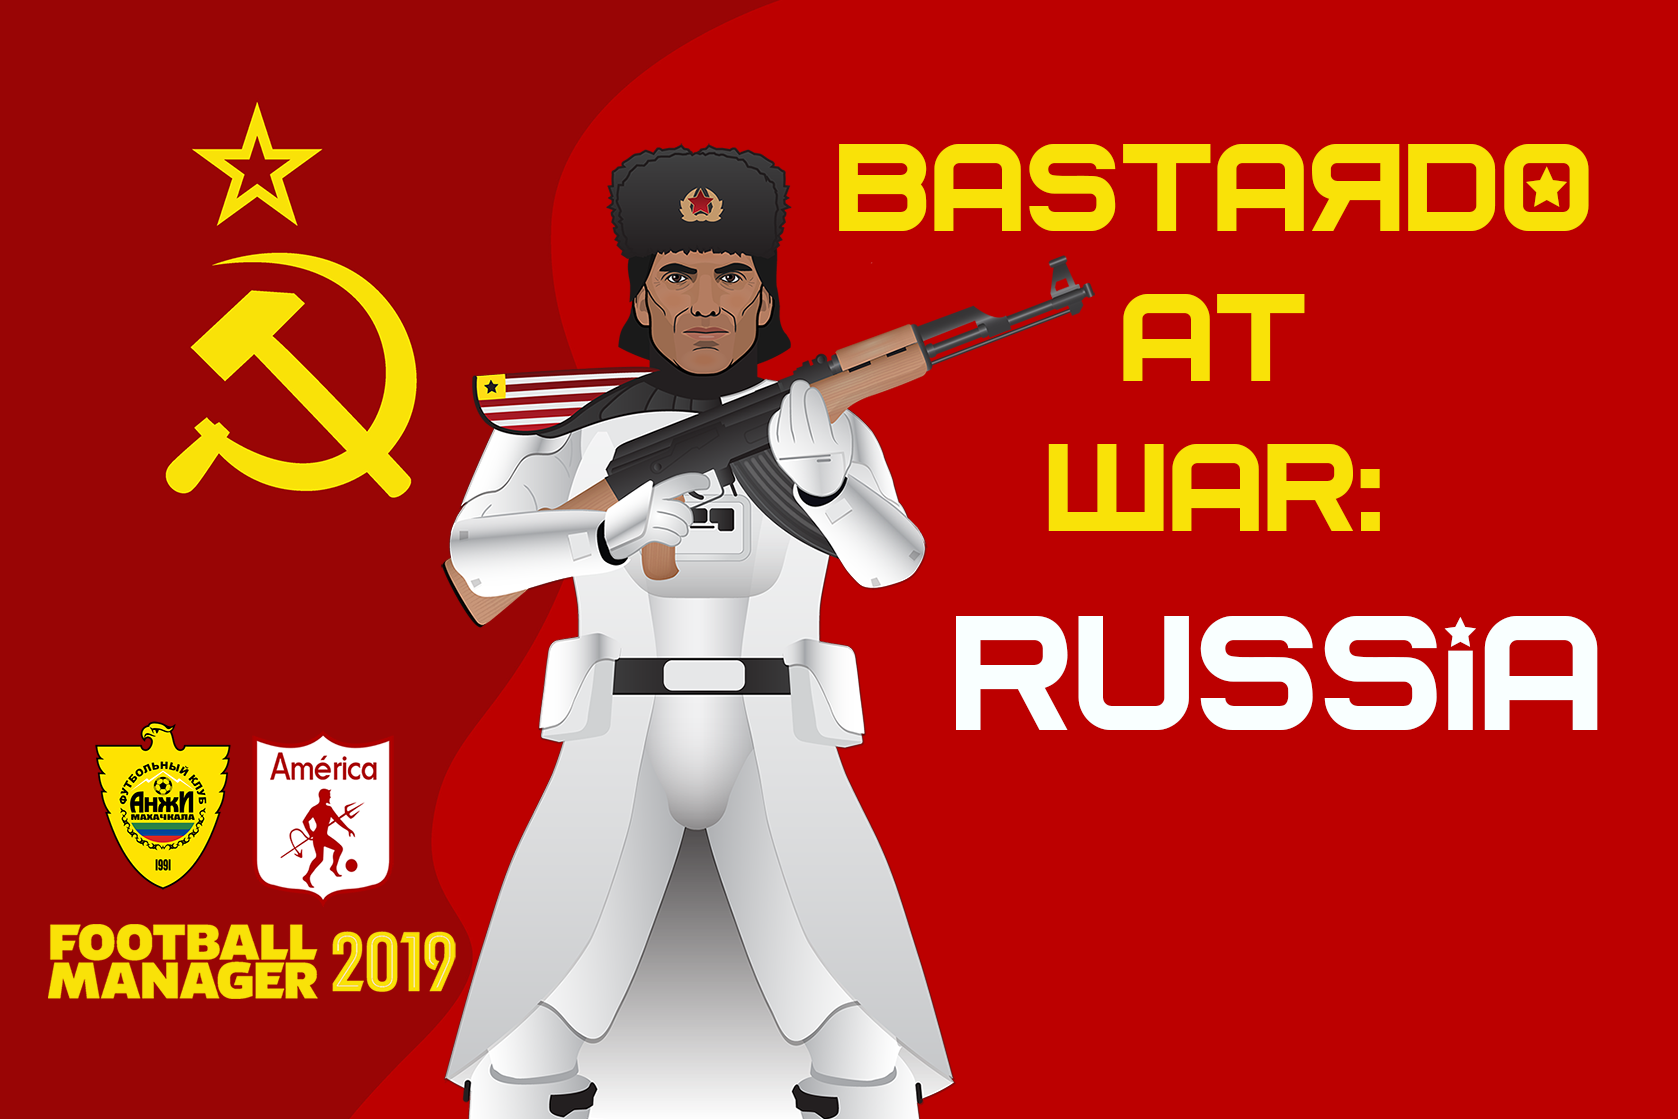 Bastardo At War - Russia.png